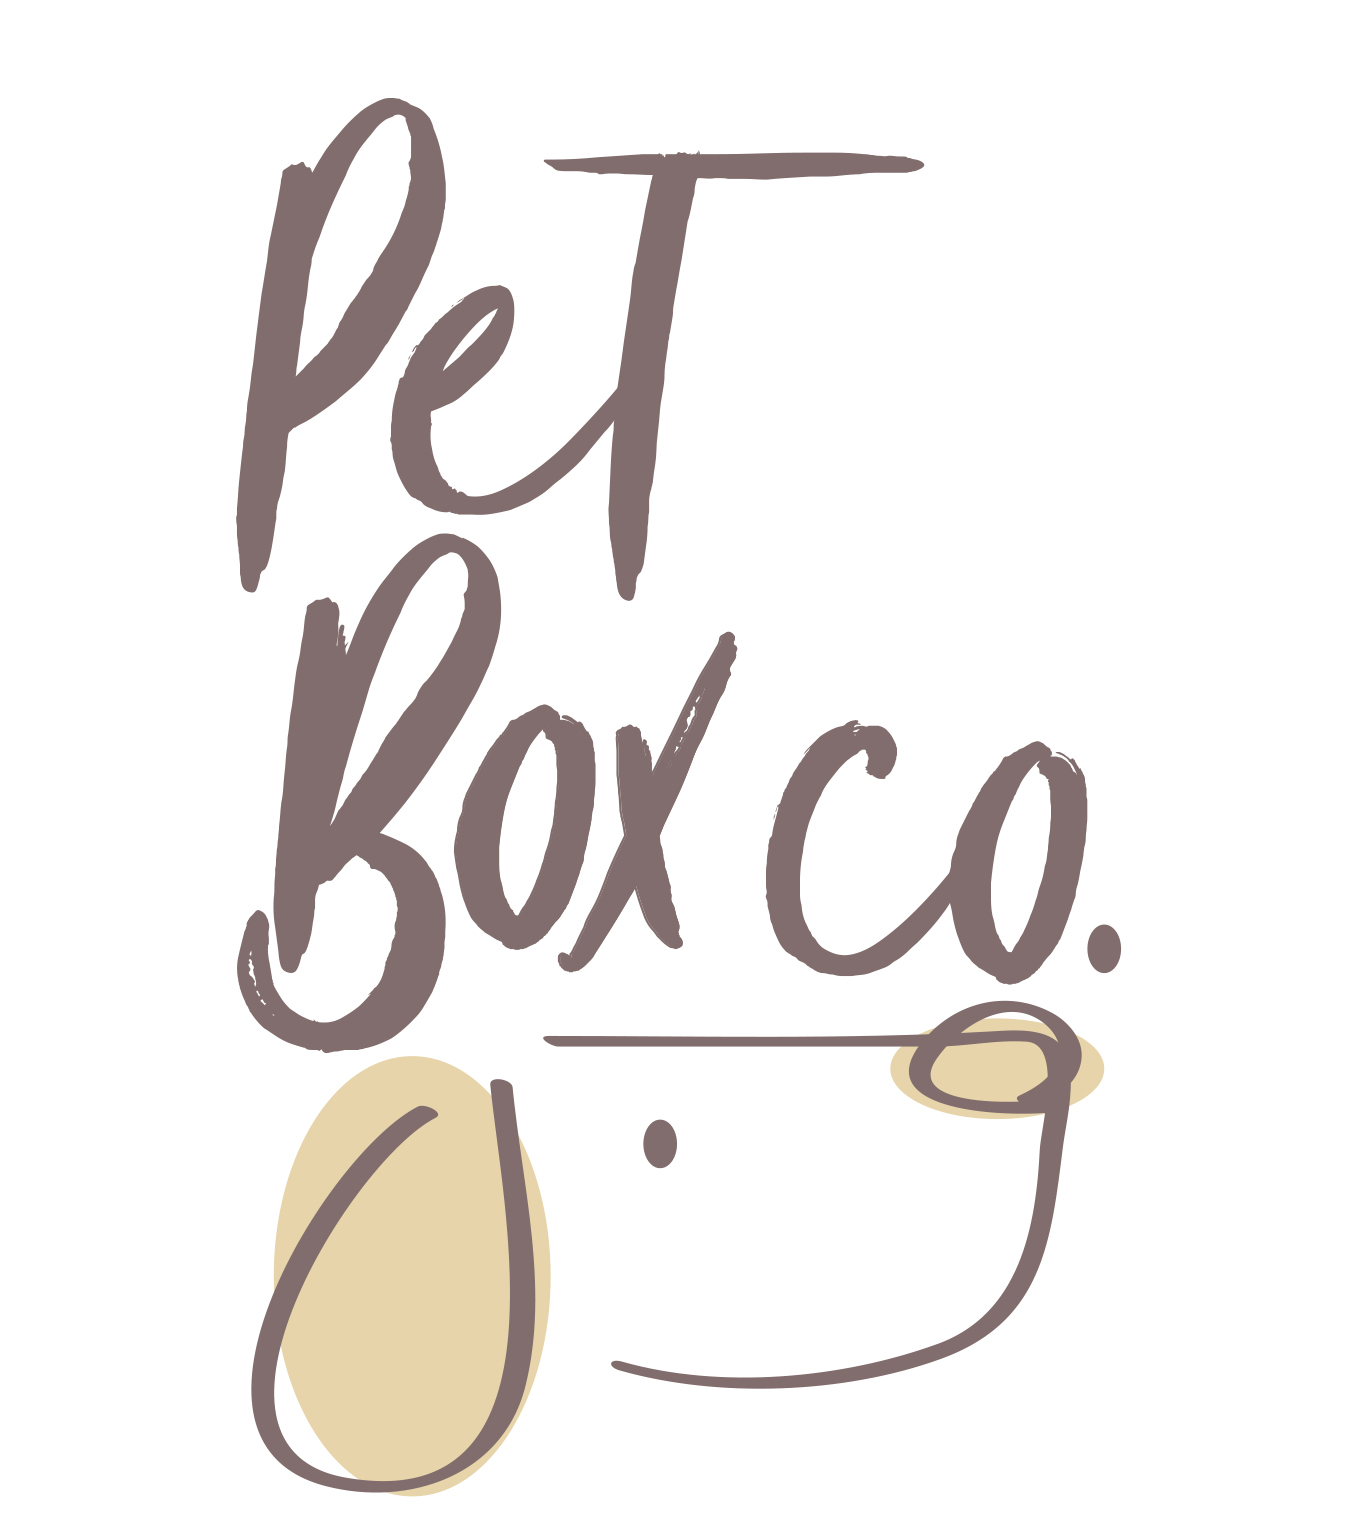 Pet Box Co